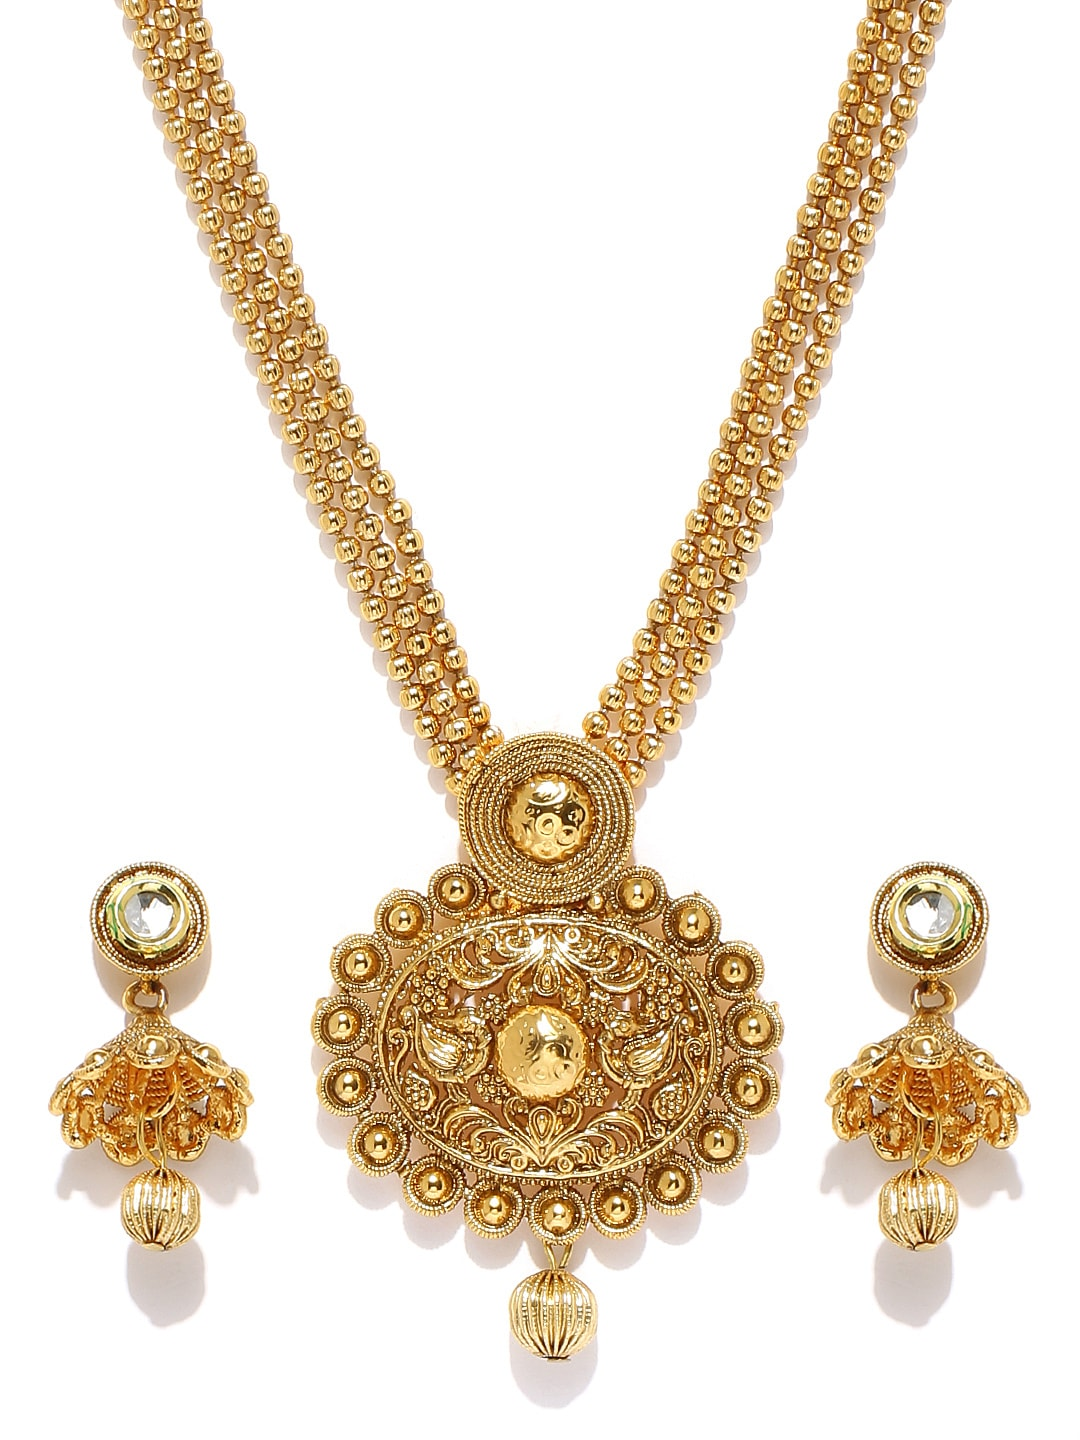 b13994f93 Necklace Jewellery Set - Buy Necklace Jewellery Set online in India